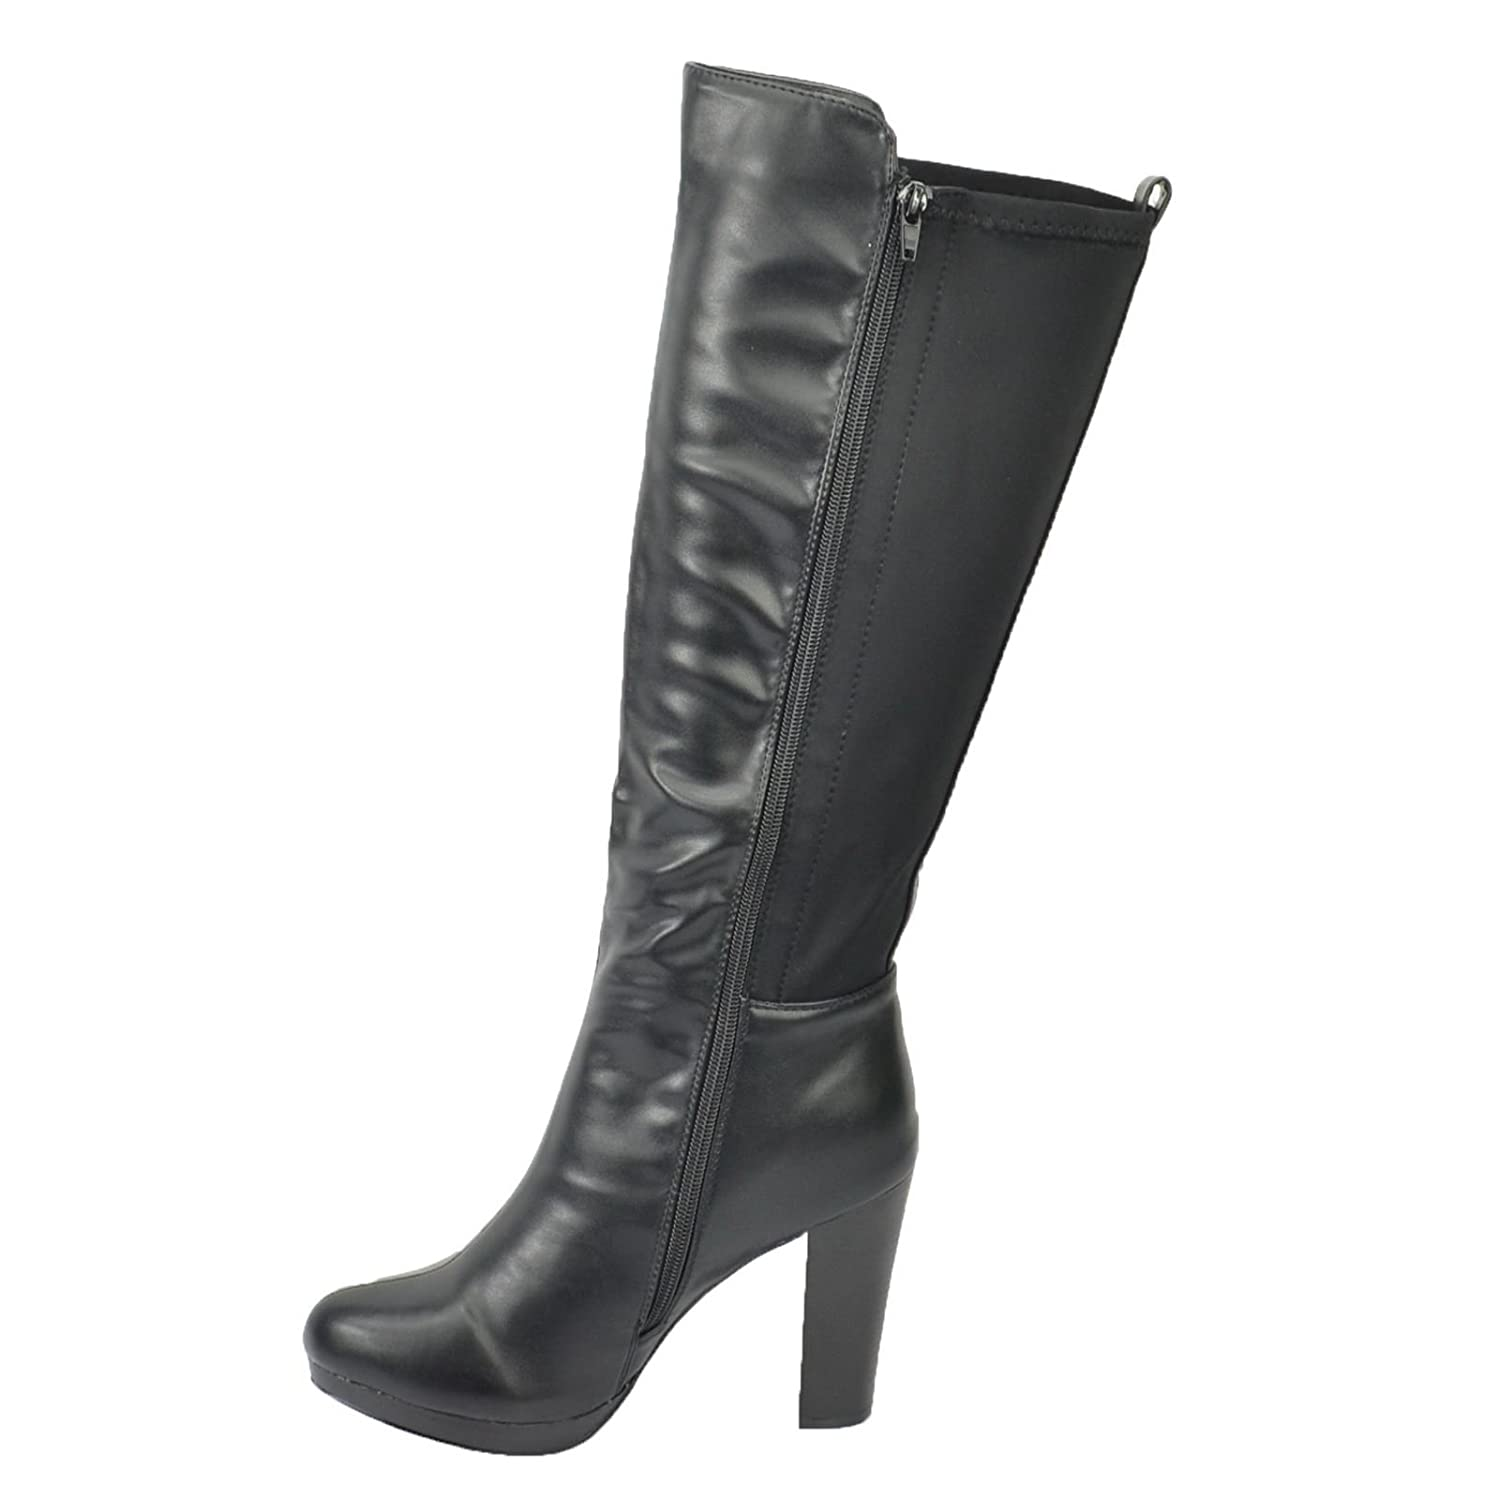 Miss Image UK New Ladies Womens Knee High Platform Block Heel Stretch Zip  UP Boots Shoes Size: Amazon.co.uk: Shoes & Bags